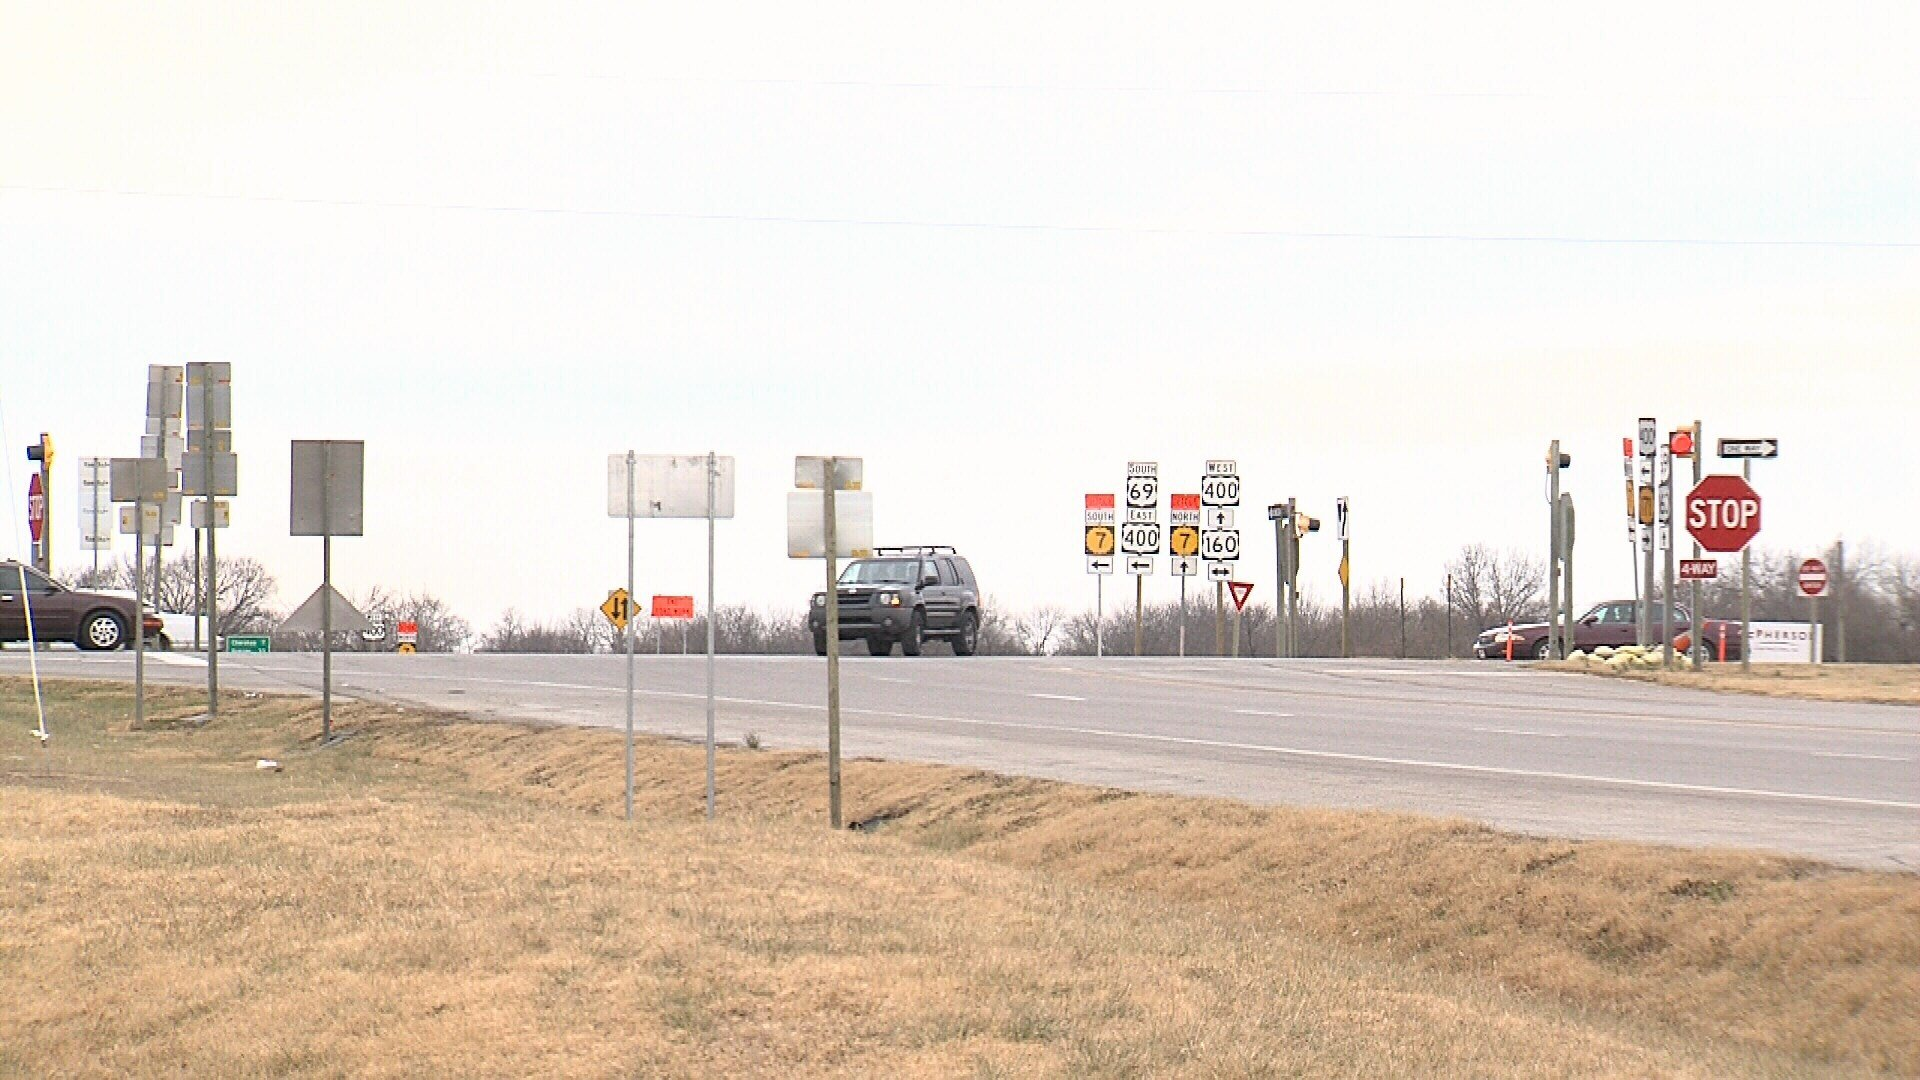 Highways 69, 171, 400 intersection